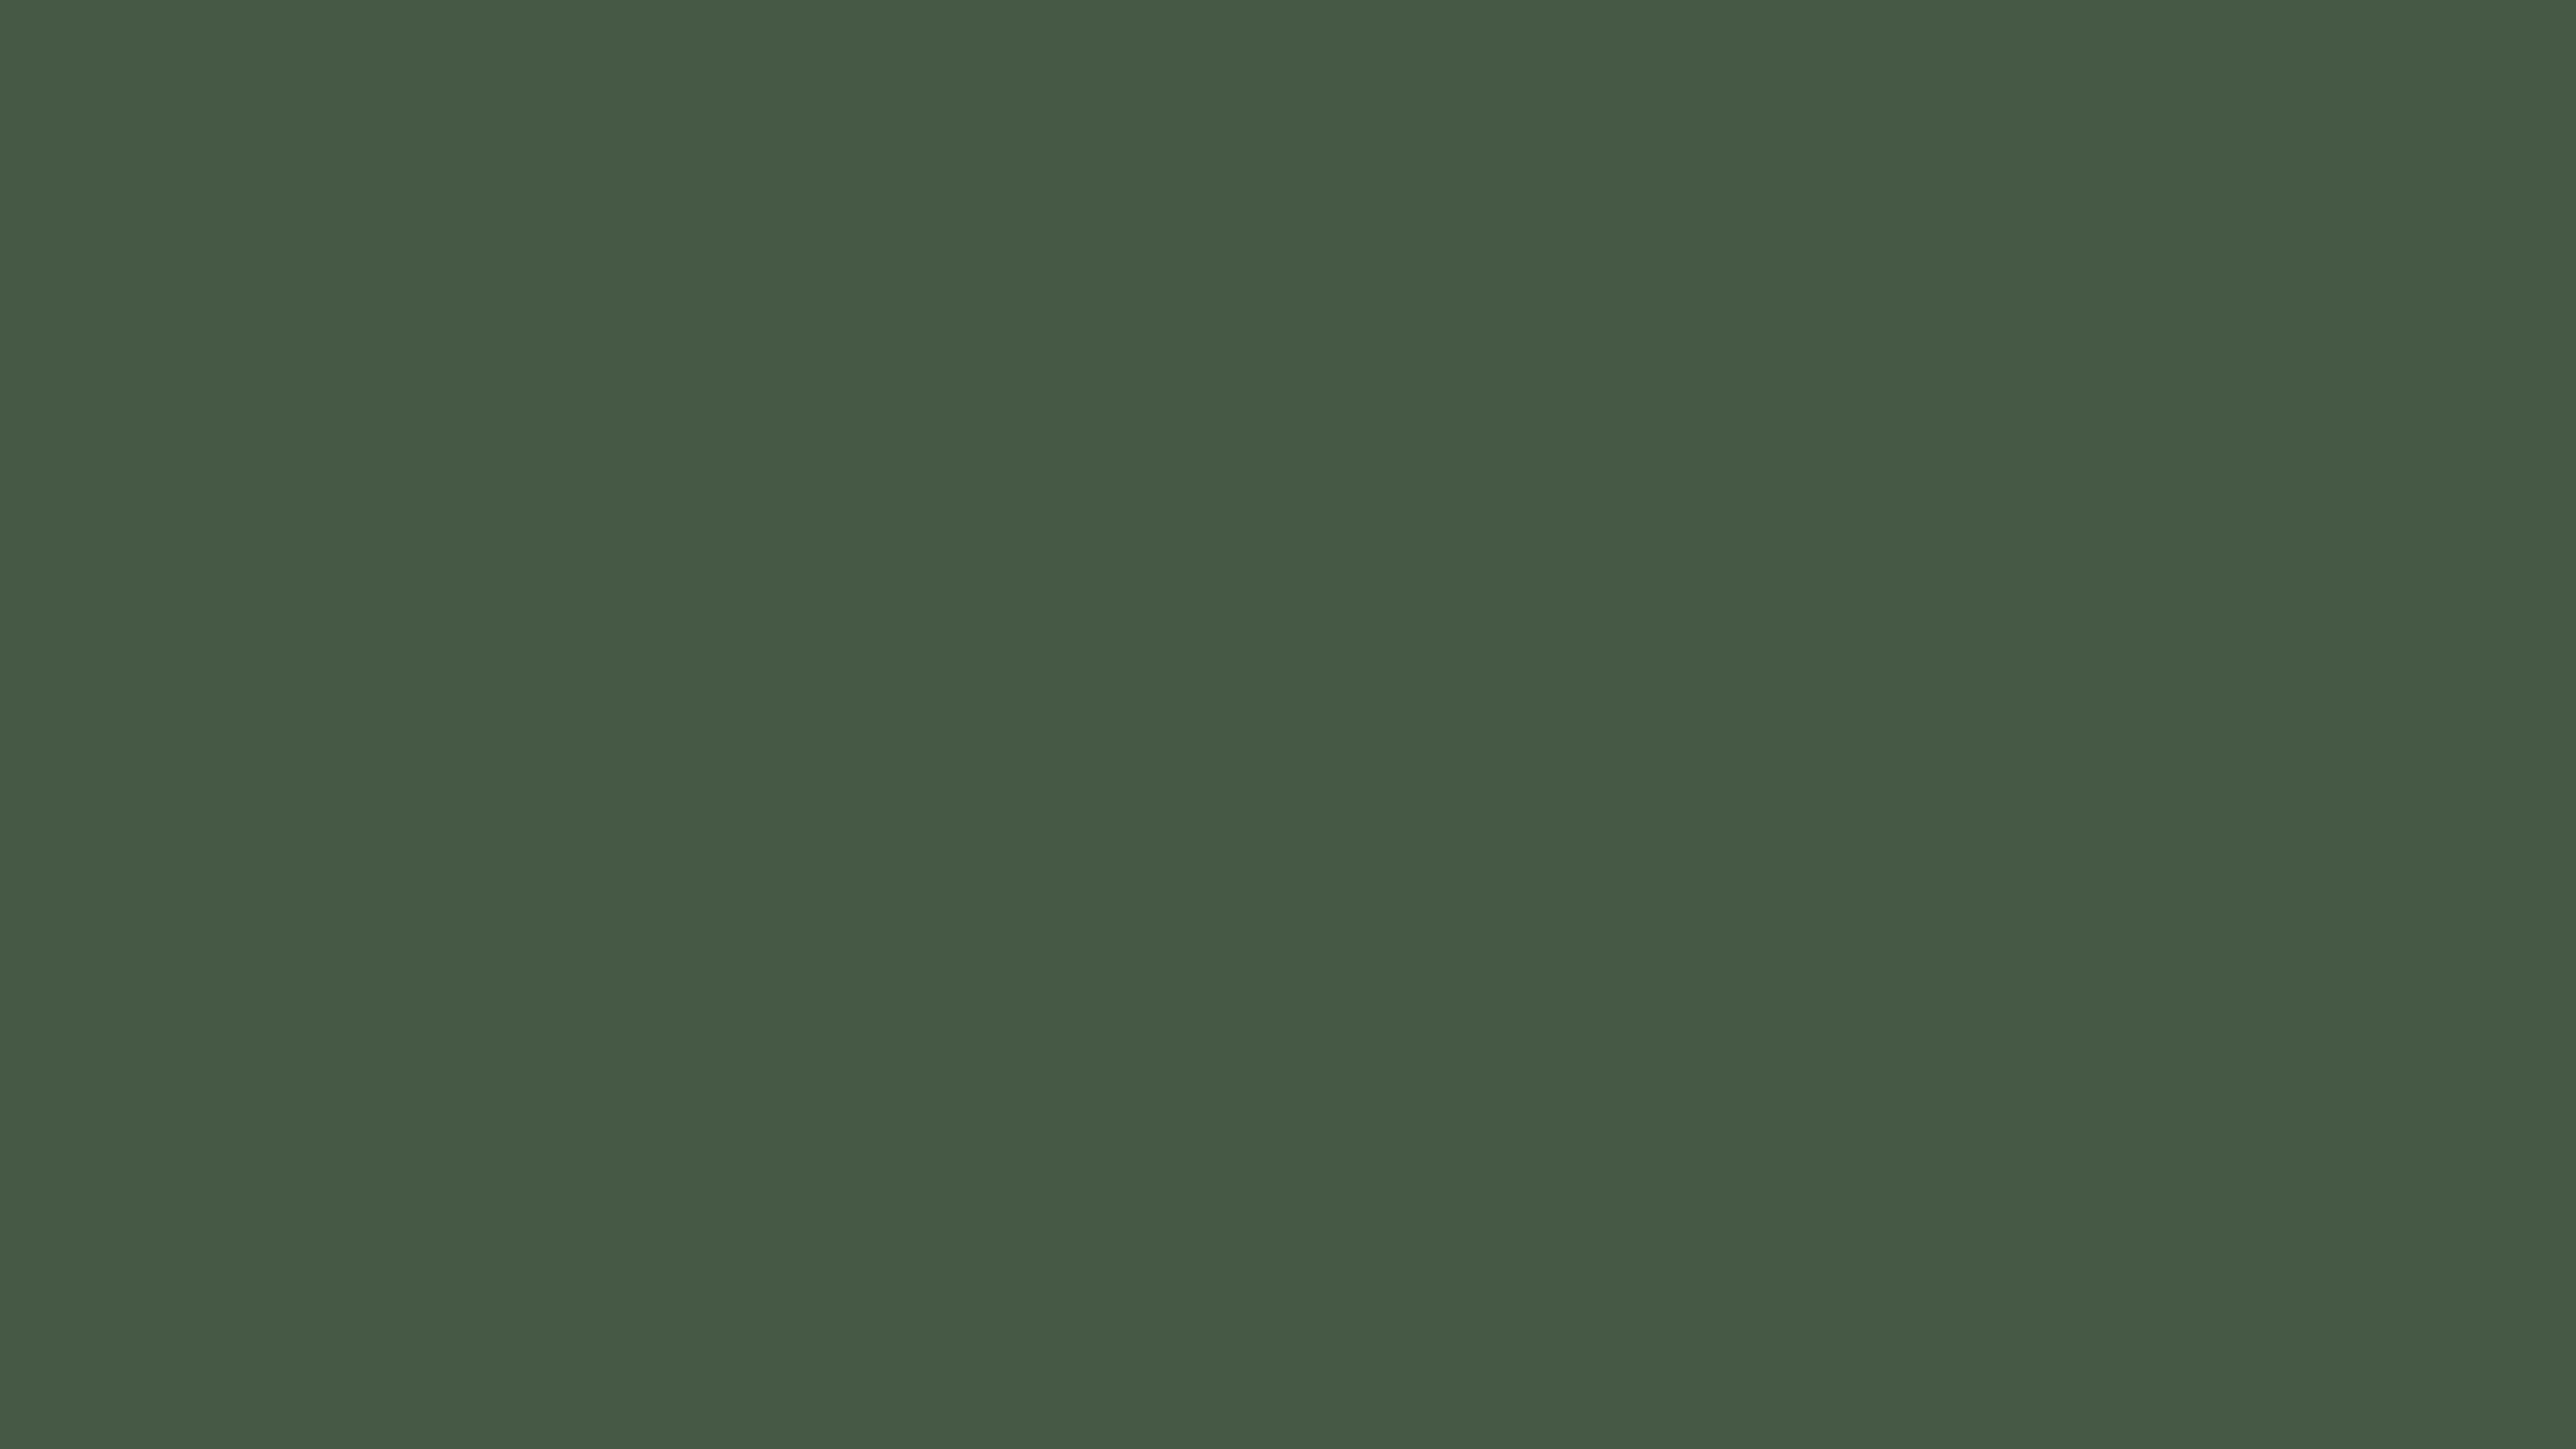 4096x2304 Gray-asparagus Solid Color Background